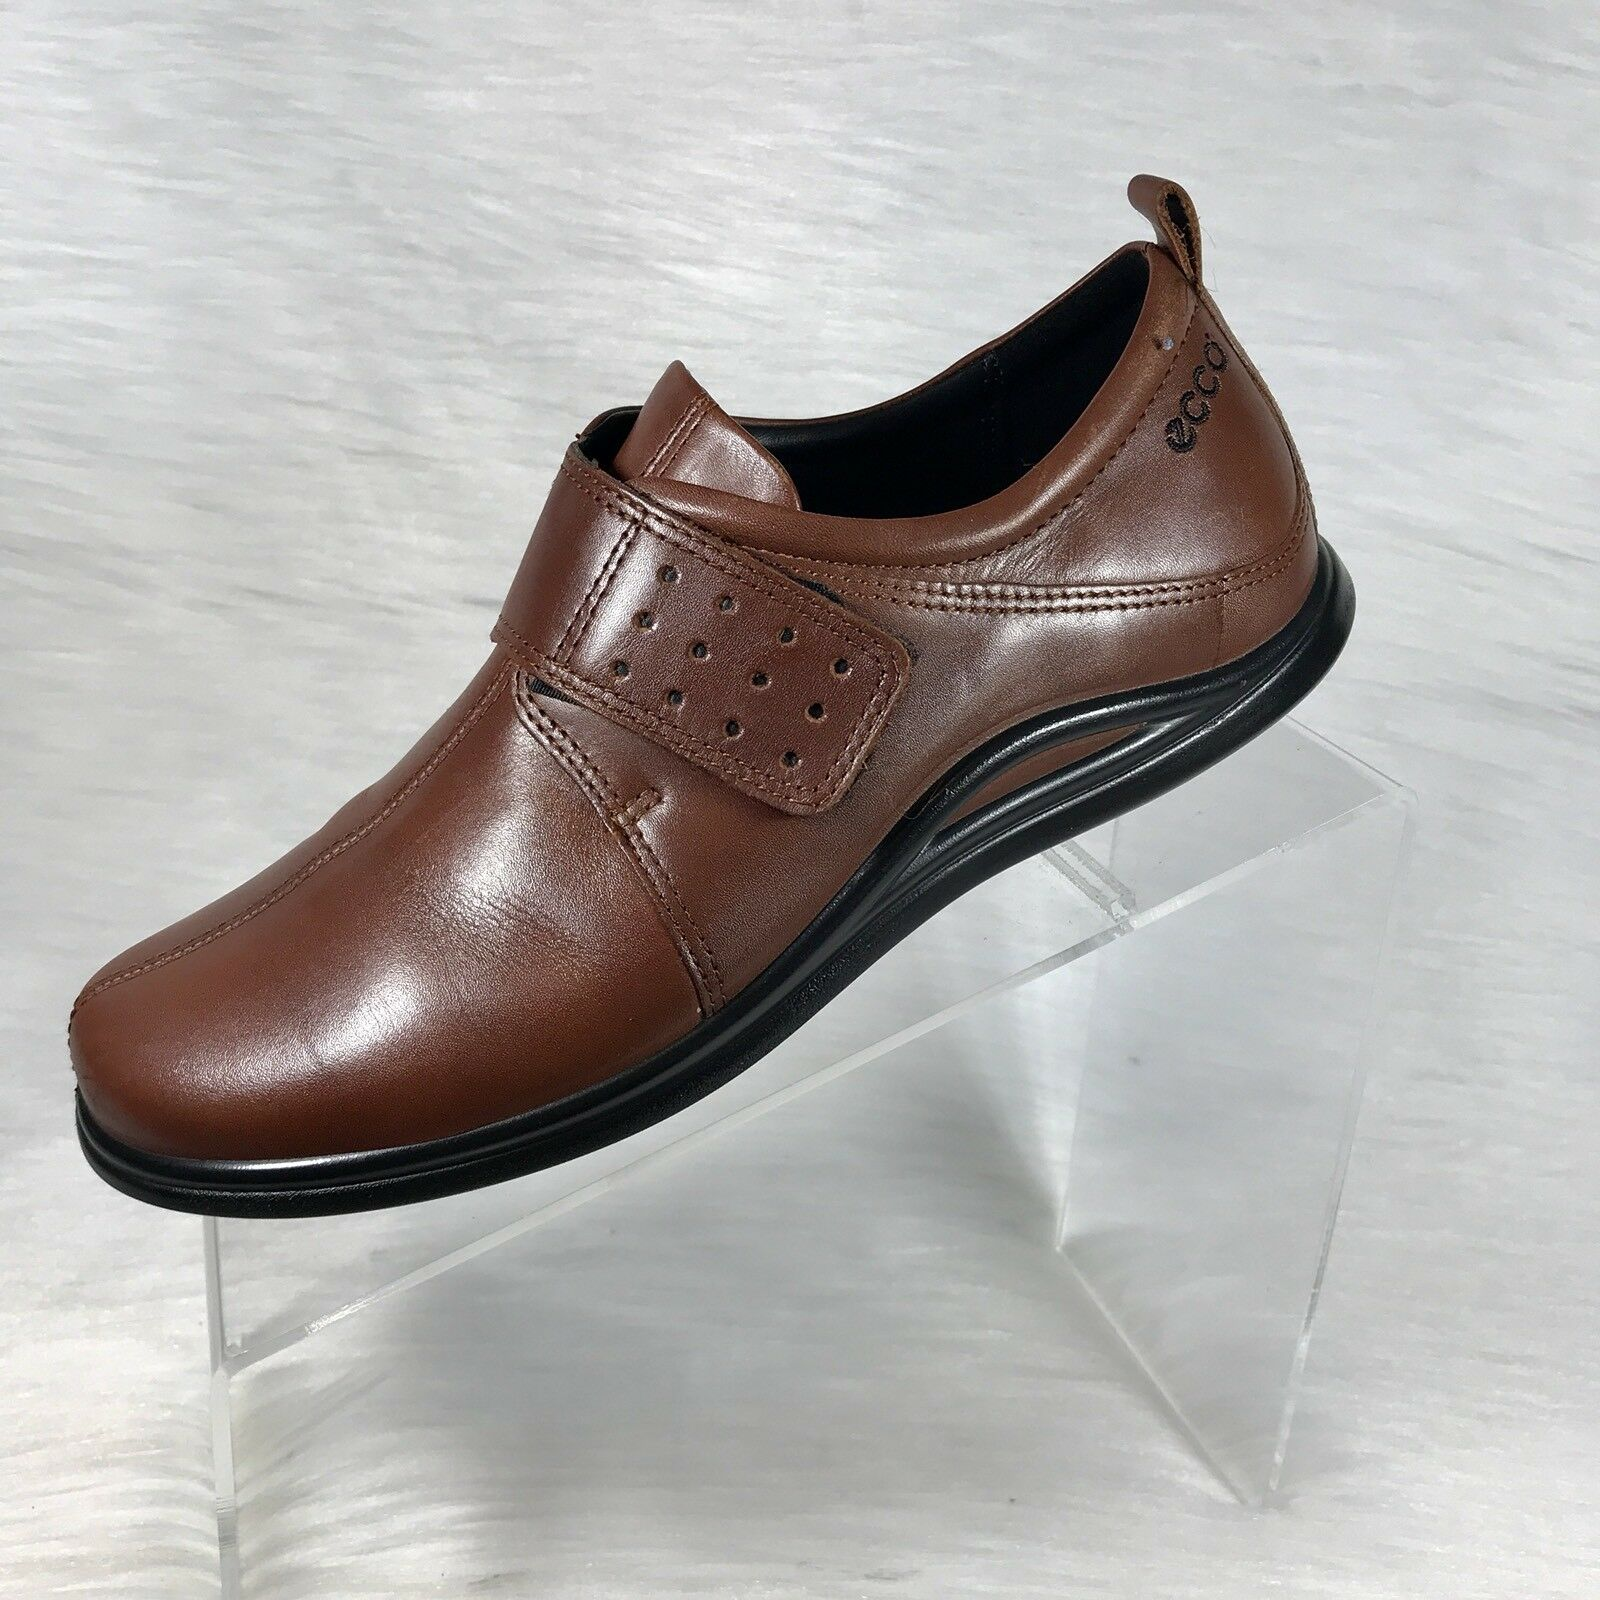 Ecco Donna's Loafers Brown Leather Slip on comfort shoes - Size 39 US 8 - shoes 8.5 7608e7